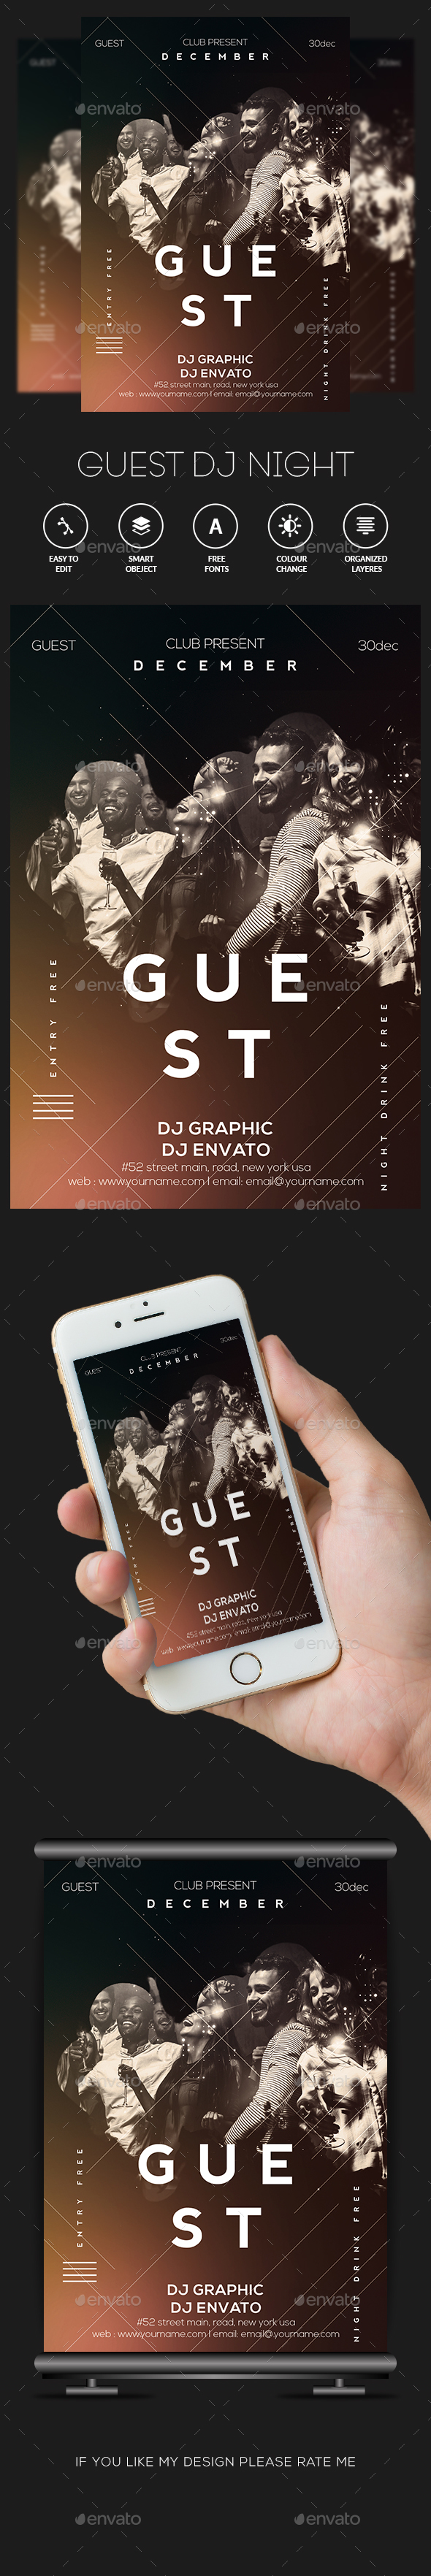 Guest DJ Poster / Flyer - Clubs & Parties Events